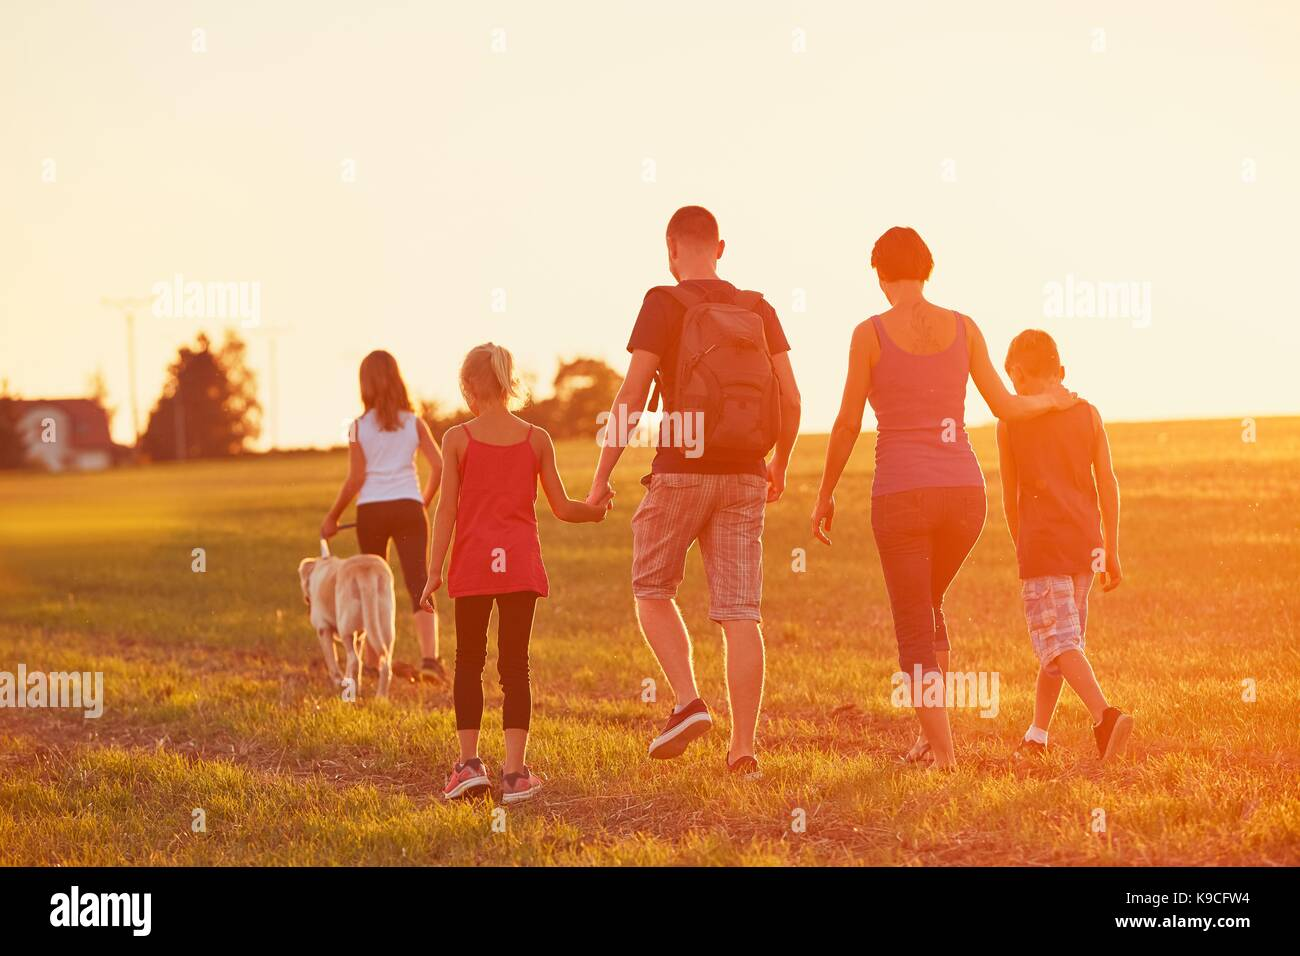 Summertime in the countryside. Silhouettes of the family with dog on the trip at the sunset. - Stock Image